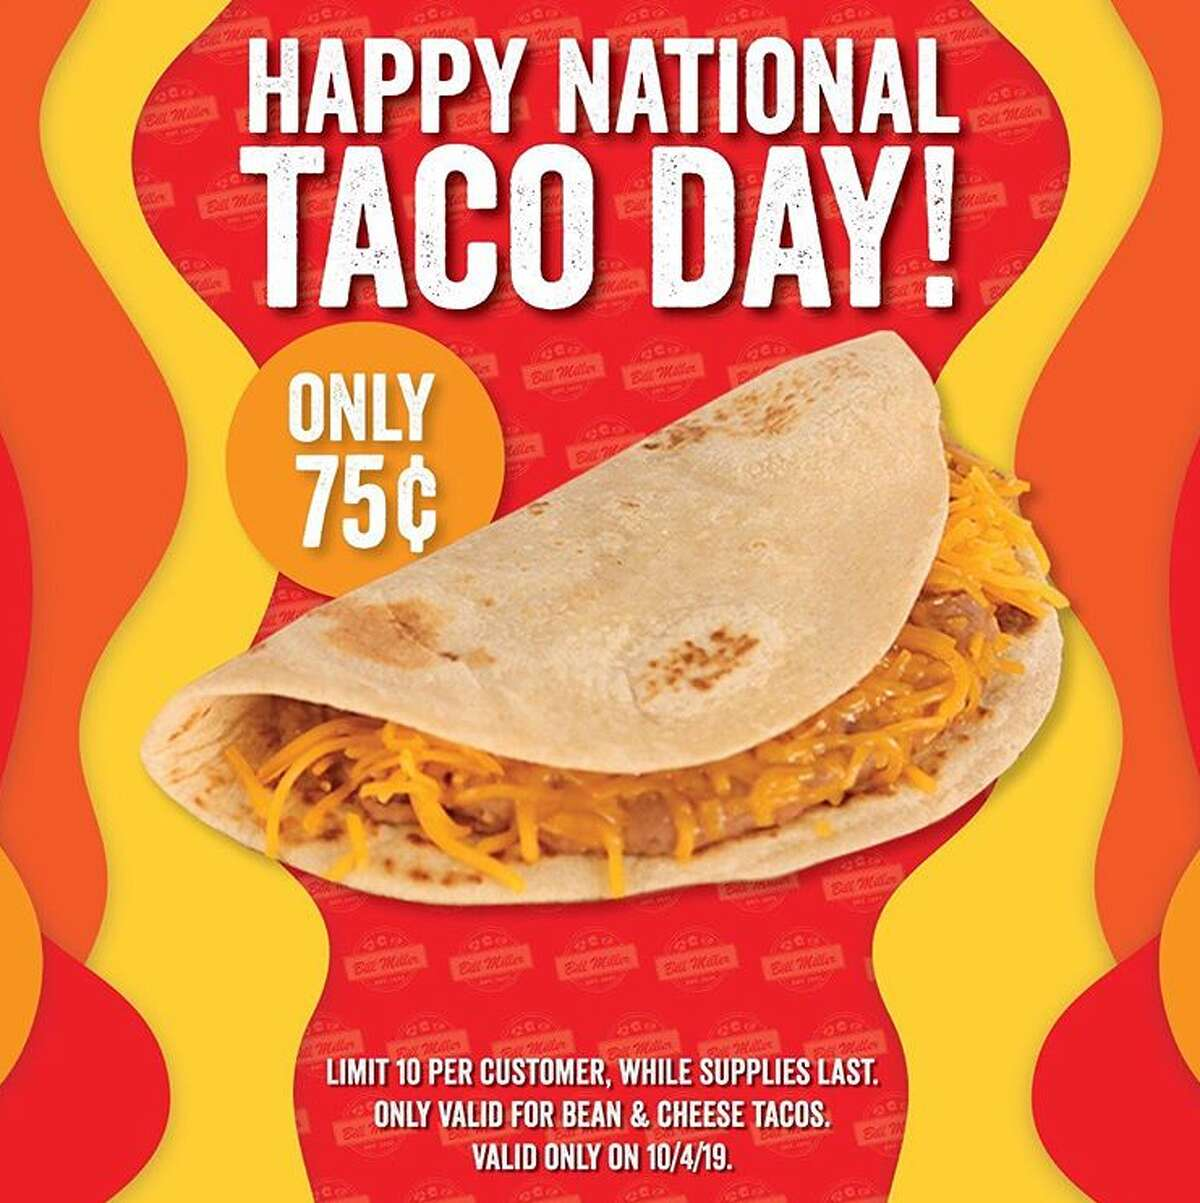 Is there anything better than a day in which establishments give out free tacos or have specials on tacos? While you think about that, you should know that Oct. 4 is National Taco Day.